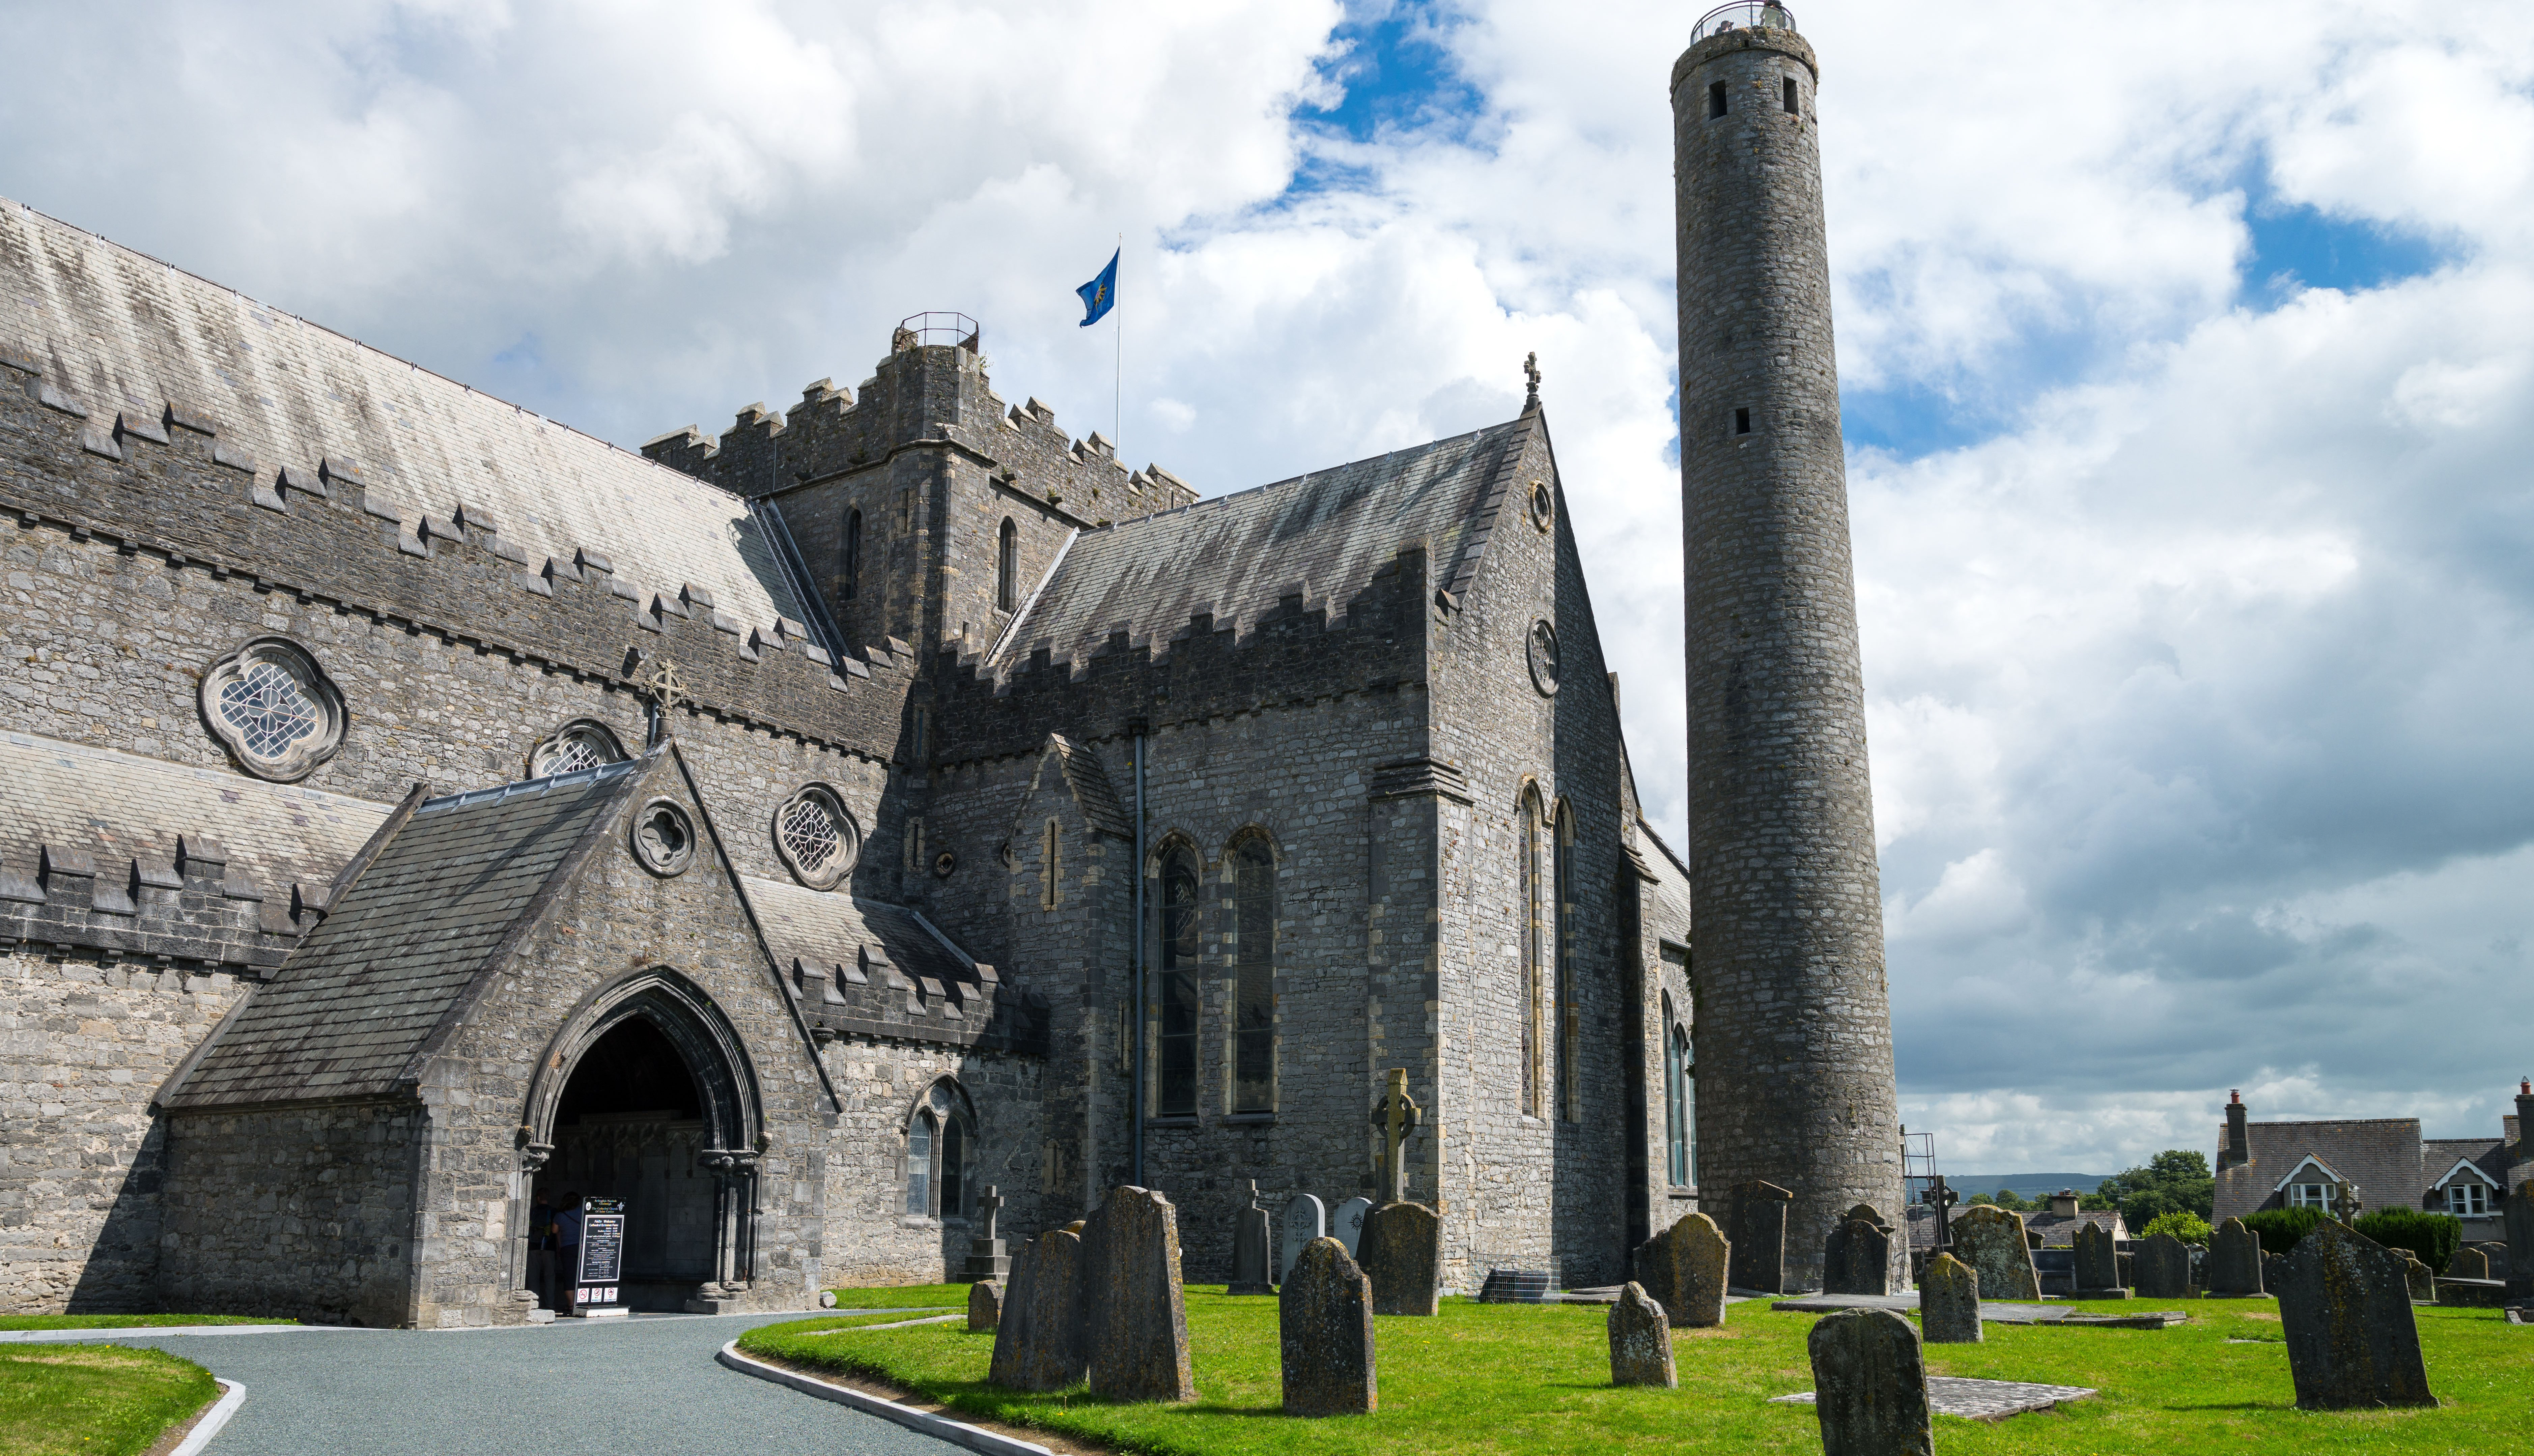 St Canice's Cathedral in Ireland